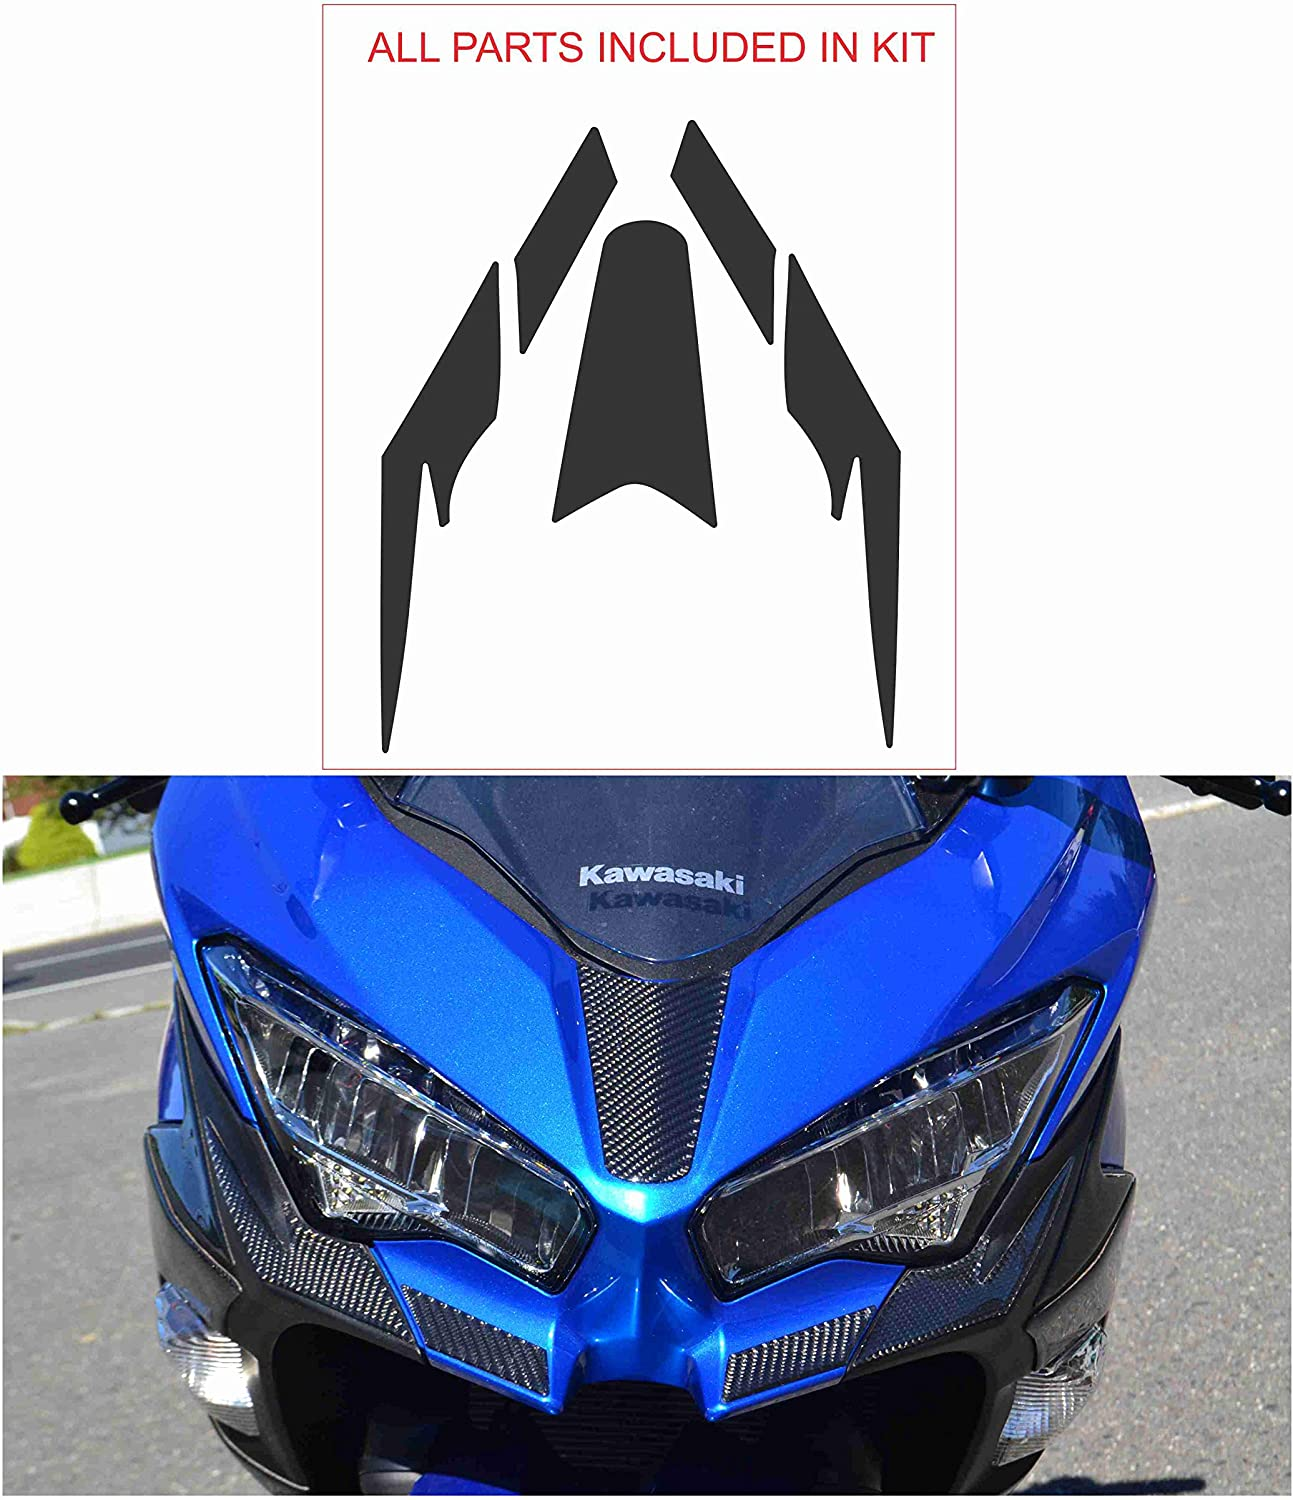 cmodd Premium Real Carbon Fiber Head Light Fairing Sharp Trim kit fit Kawasaki Ninja 400 2018 2019 2020 Sticker Overlay Trim